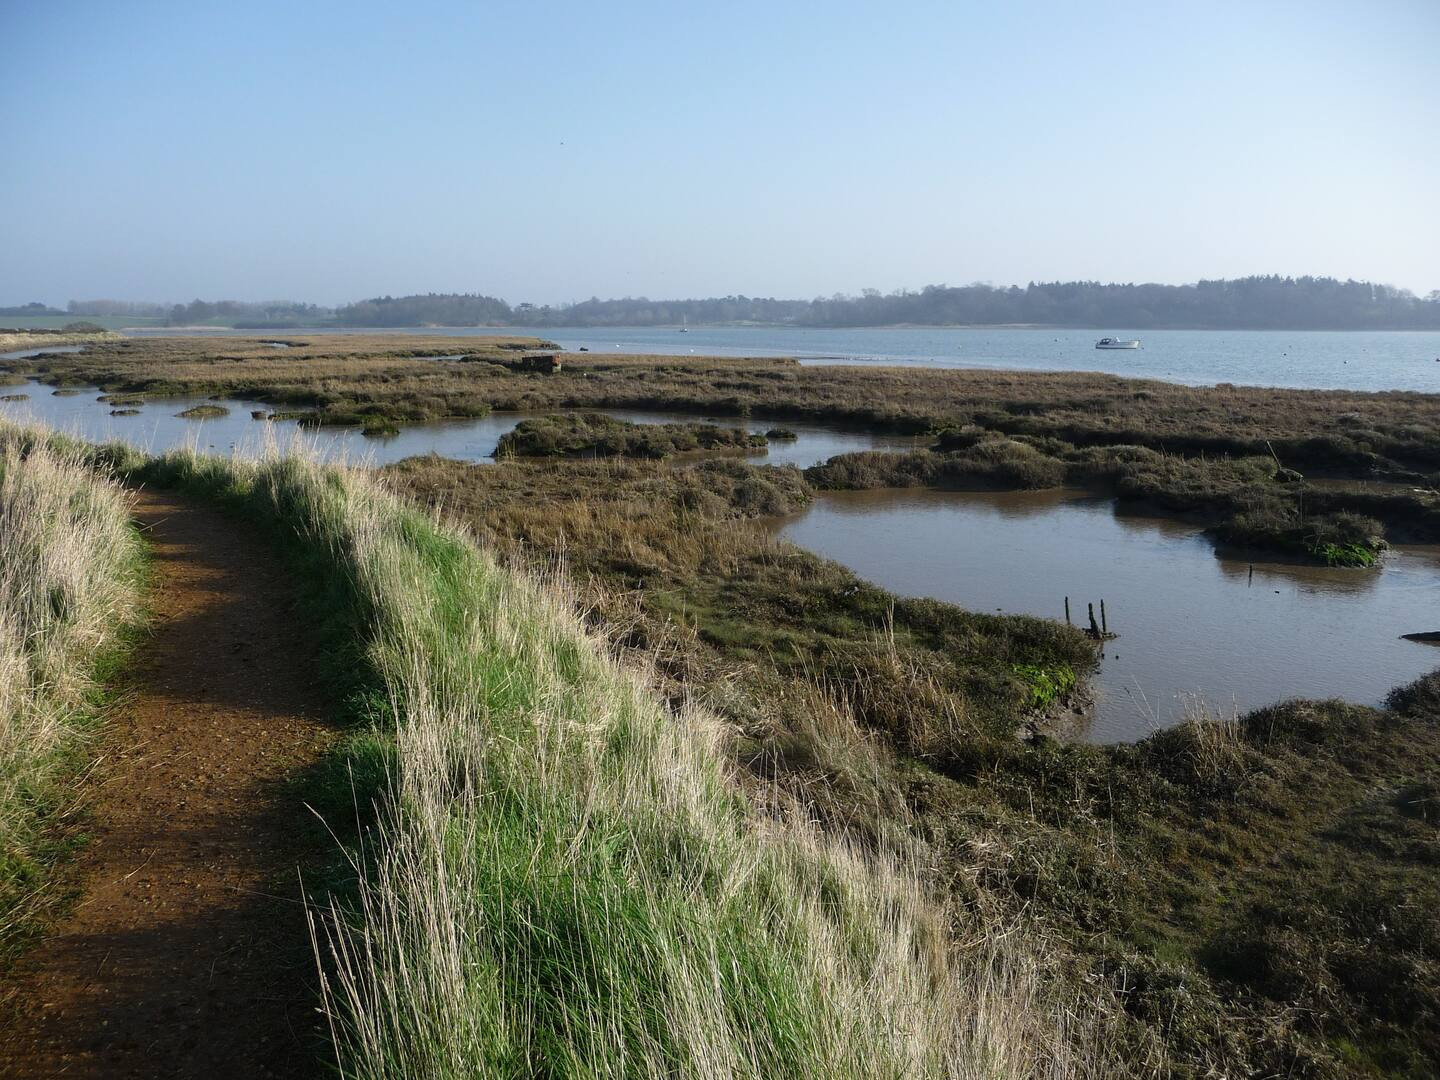 Views of the River Deben estuary